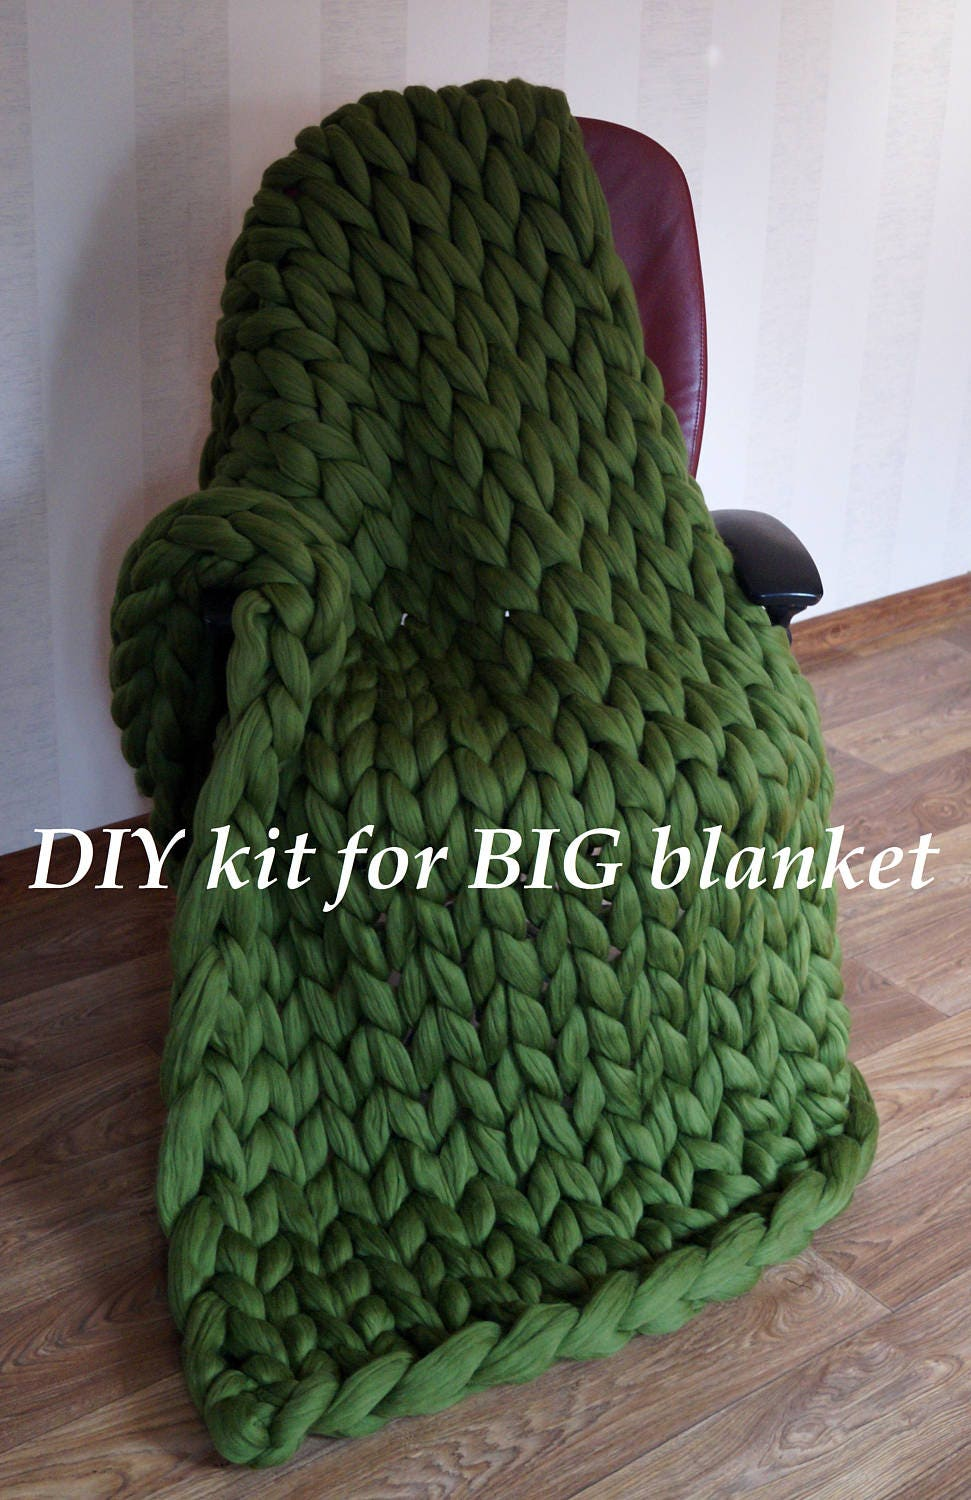 big diy knit kit for chunky knit blanket giant knitting needles 40 mm 1 6 super chunky. Black Bedroom Furniture Sets. Home Design Ideas